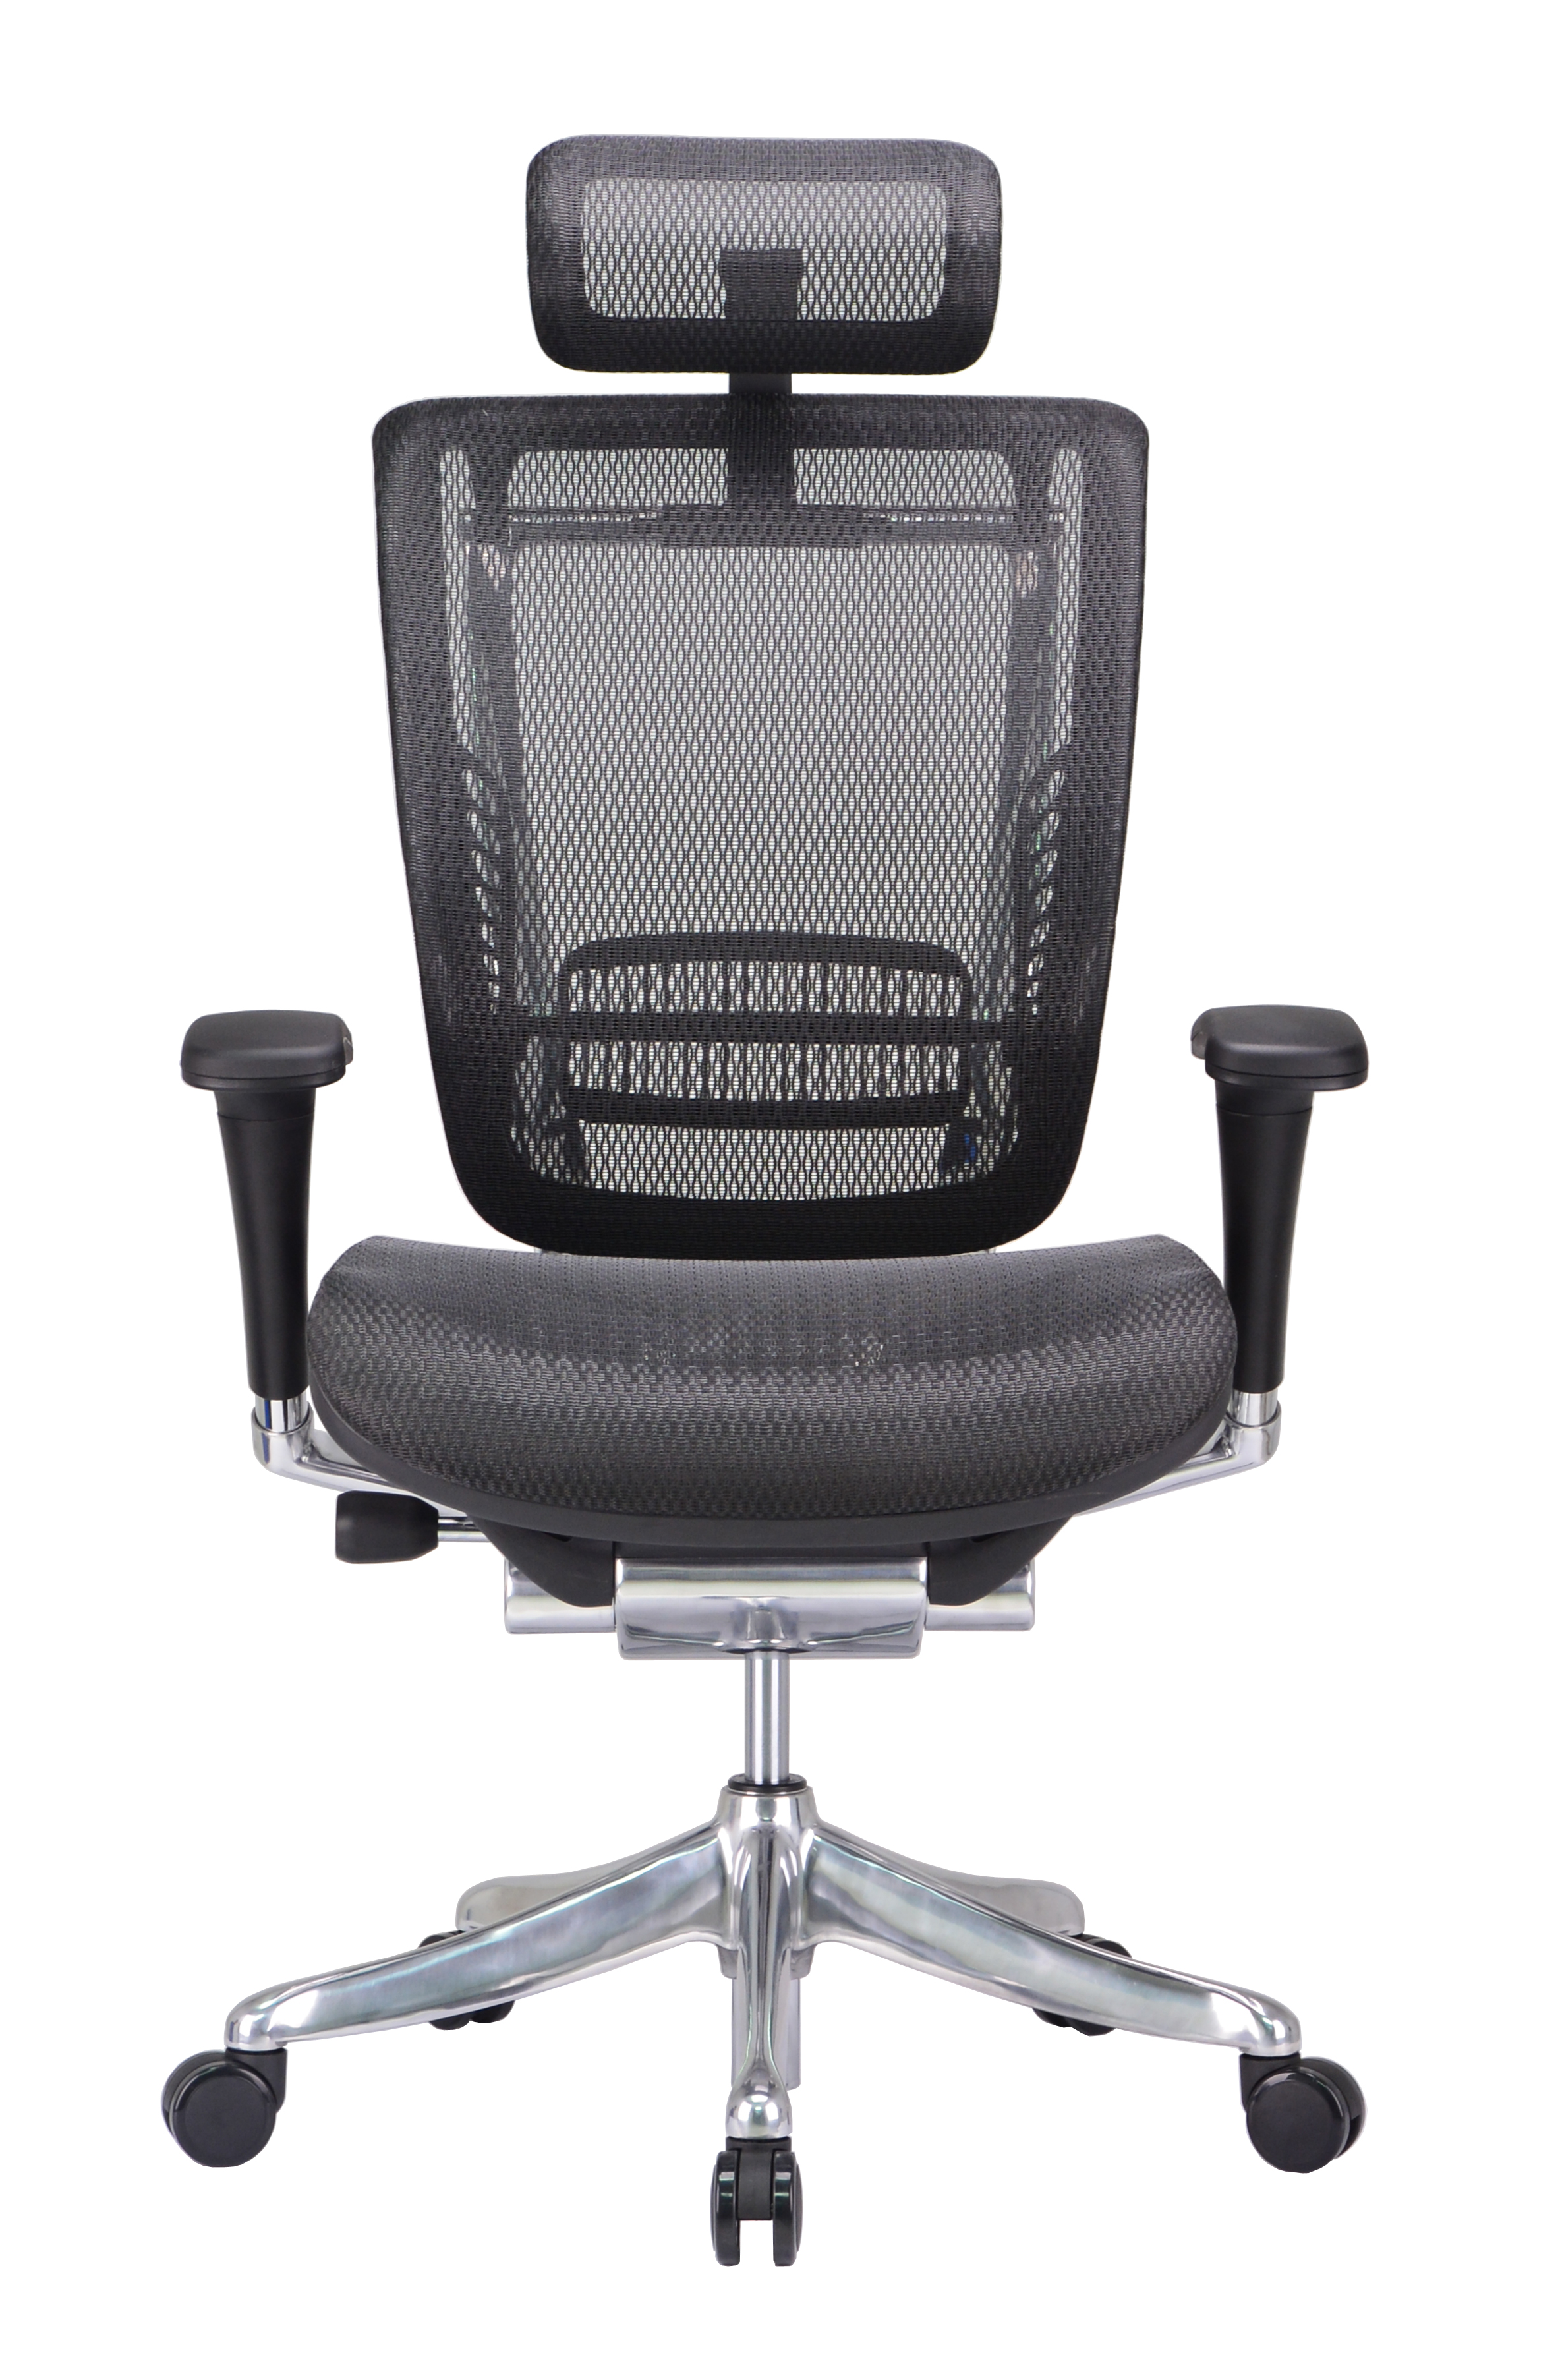 GM Seating Enklave XL Mesh Executive Hi Swivel Chair Chrome Base with Headrest, Black